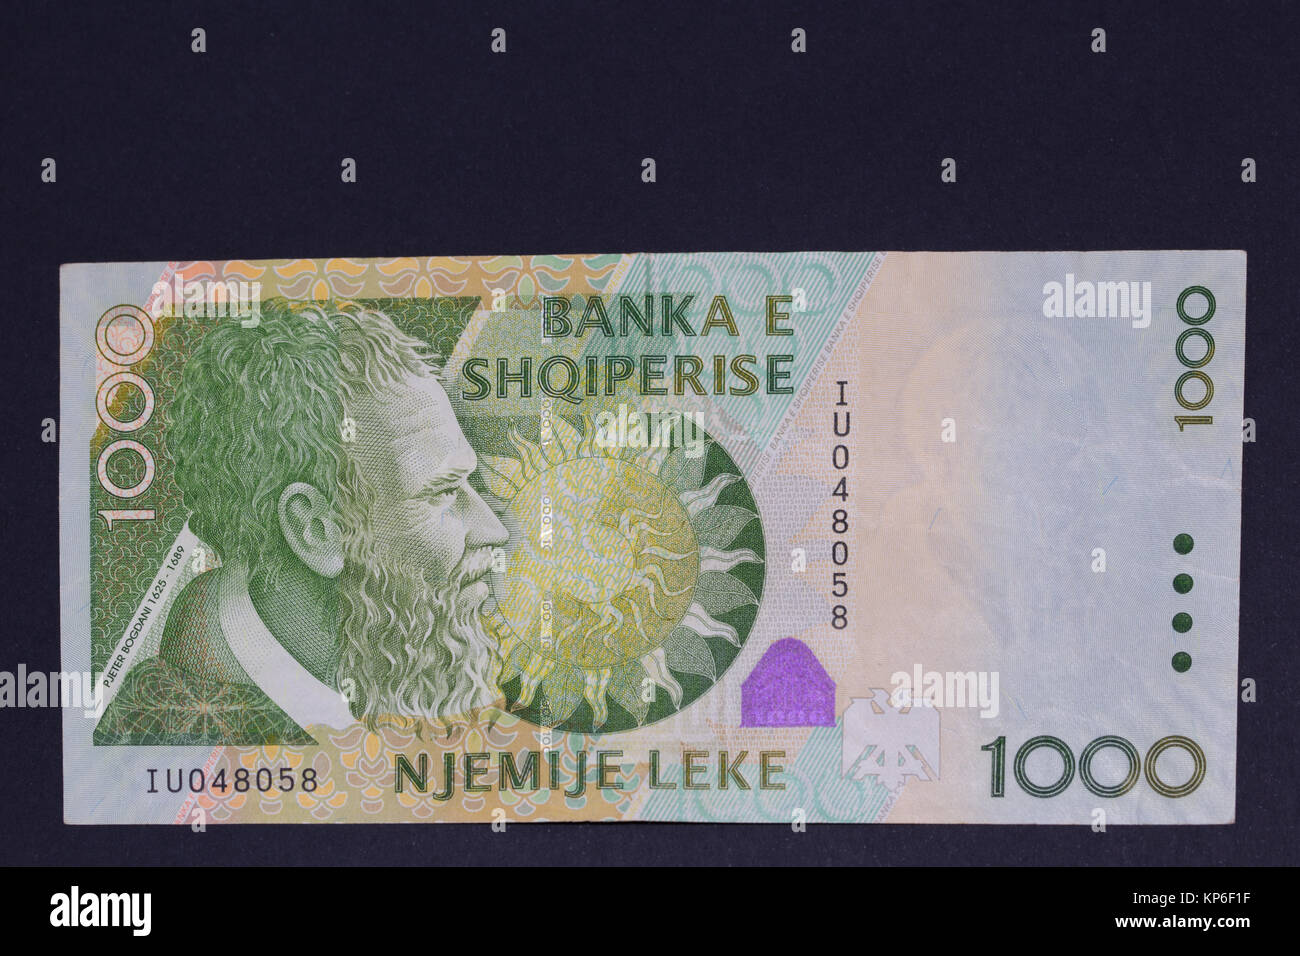 Obverse of Albanian currency one thousand 1000 Lek banknote - Stock Image